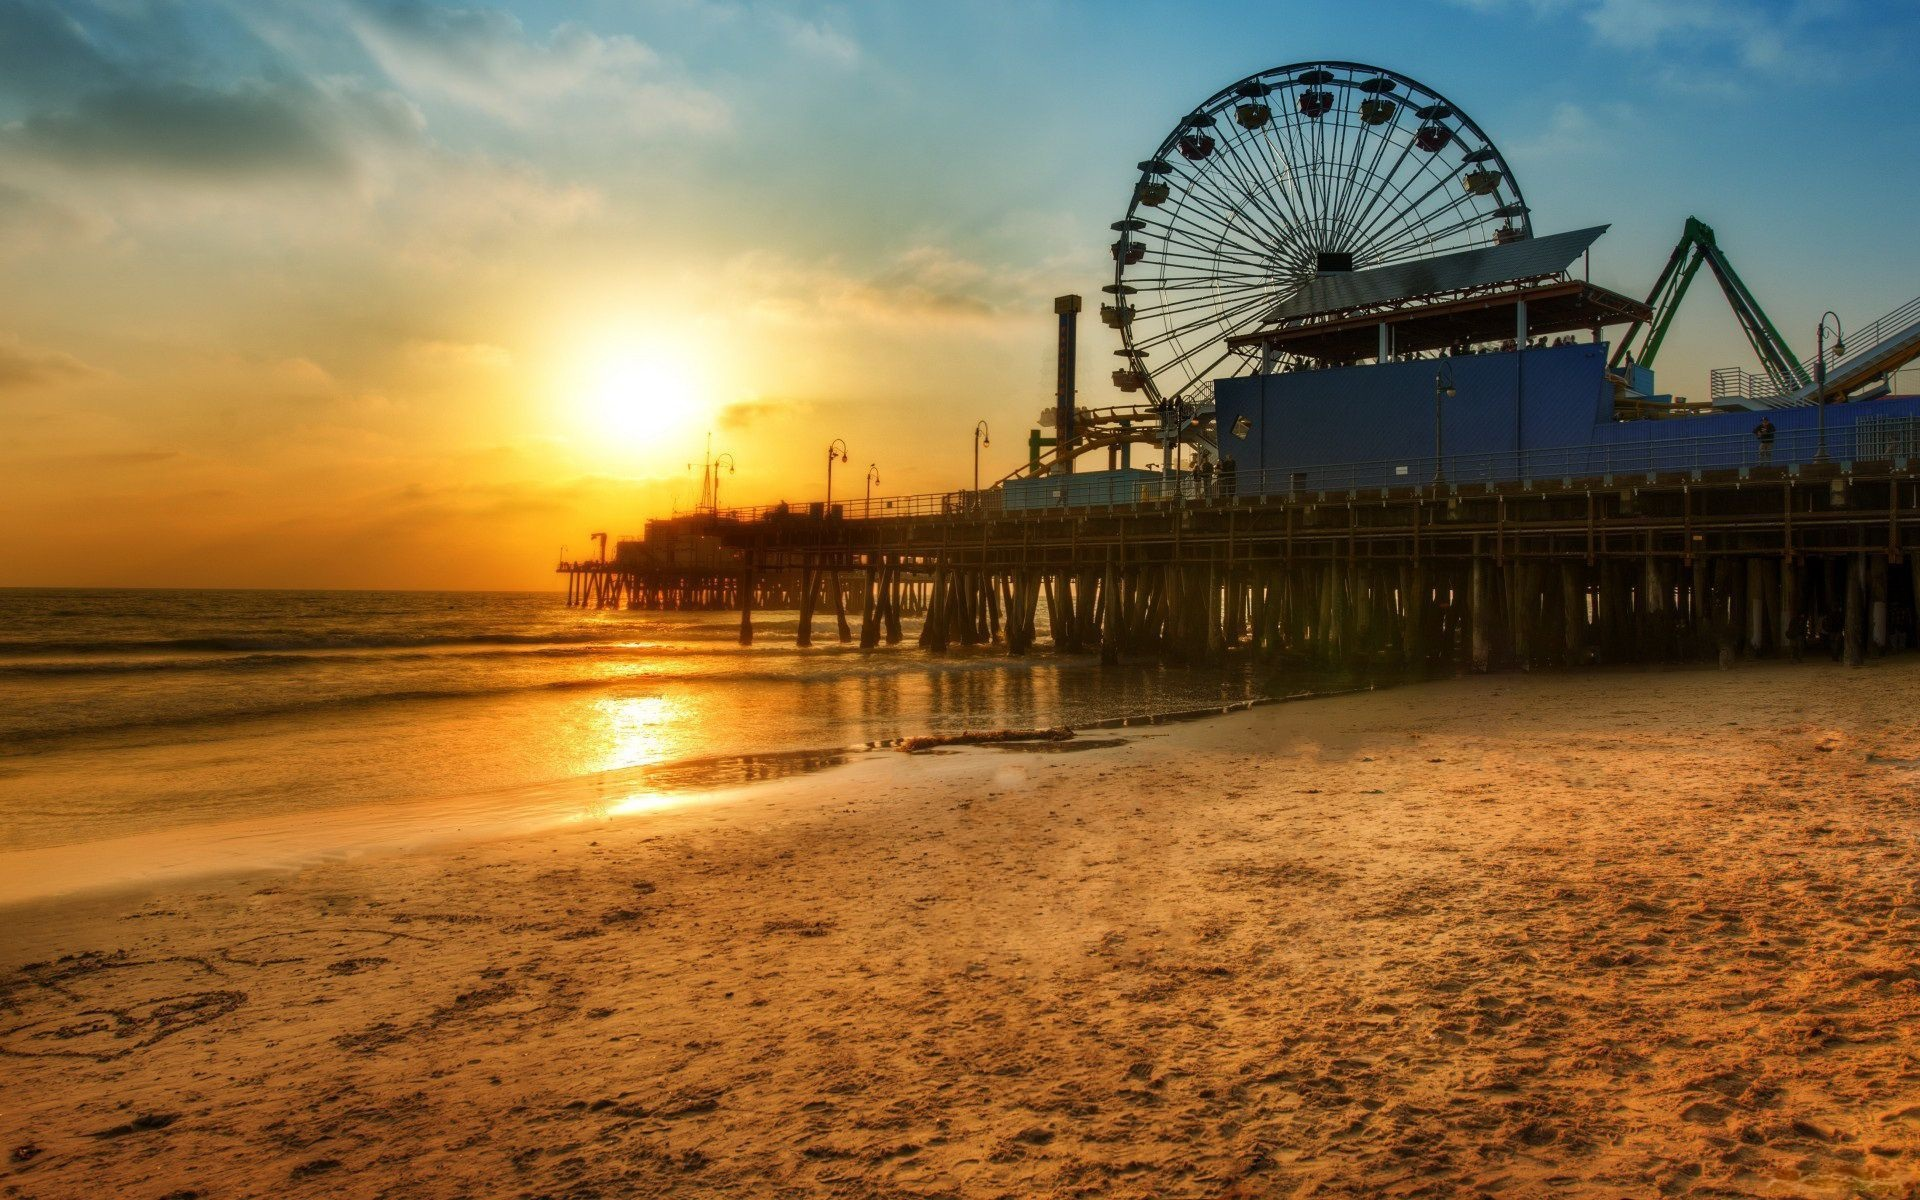 Los angeles dock ferris wheel beach sunset